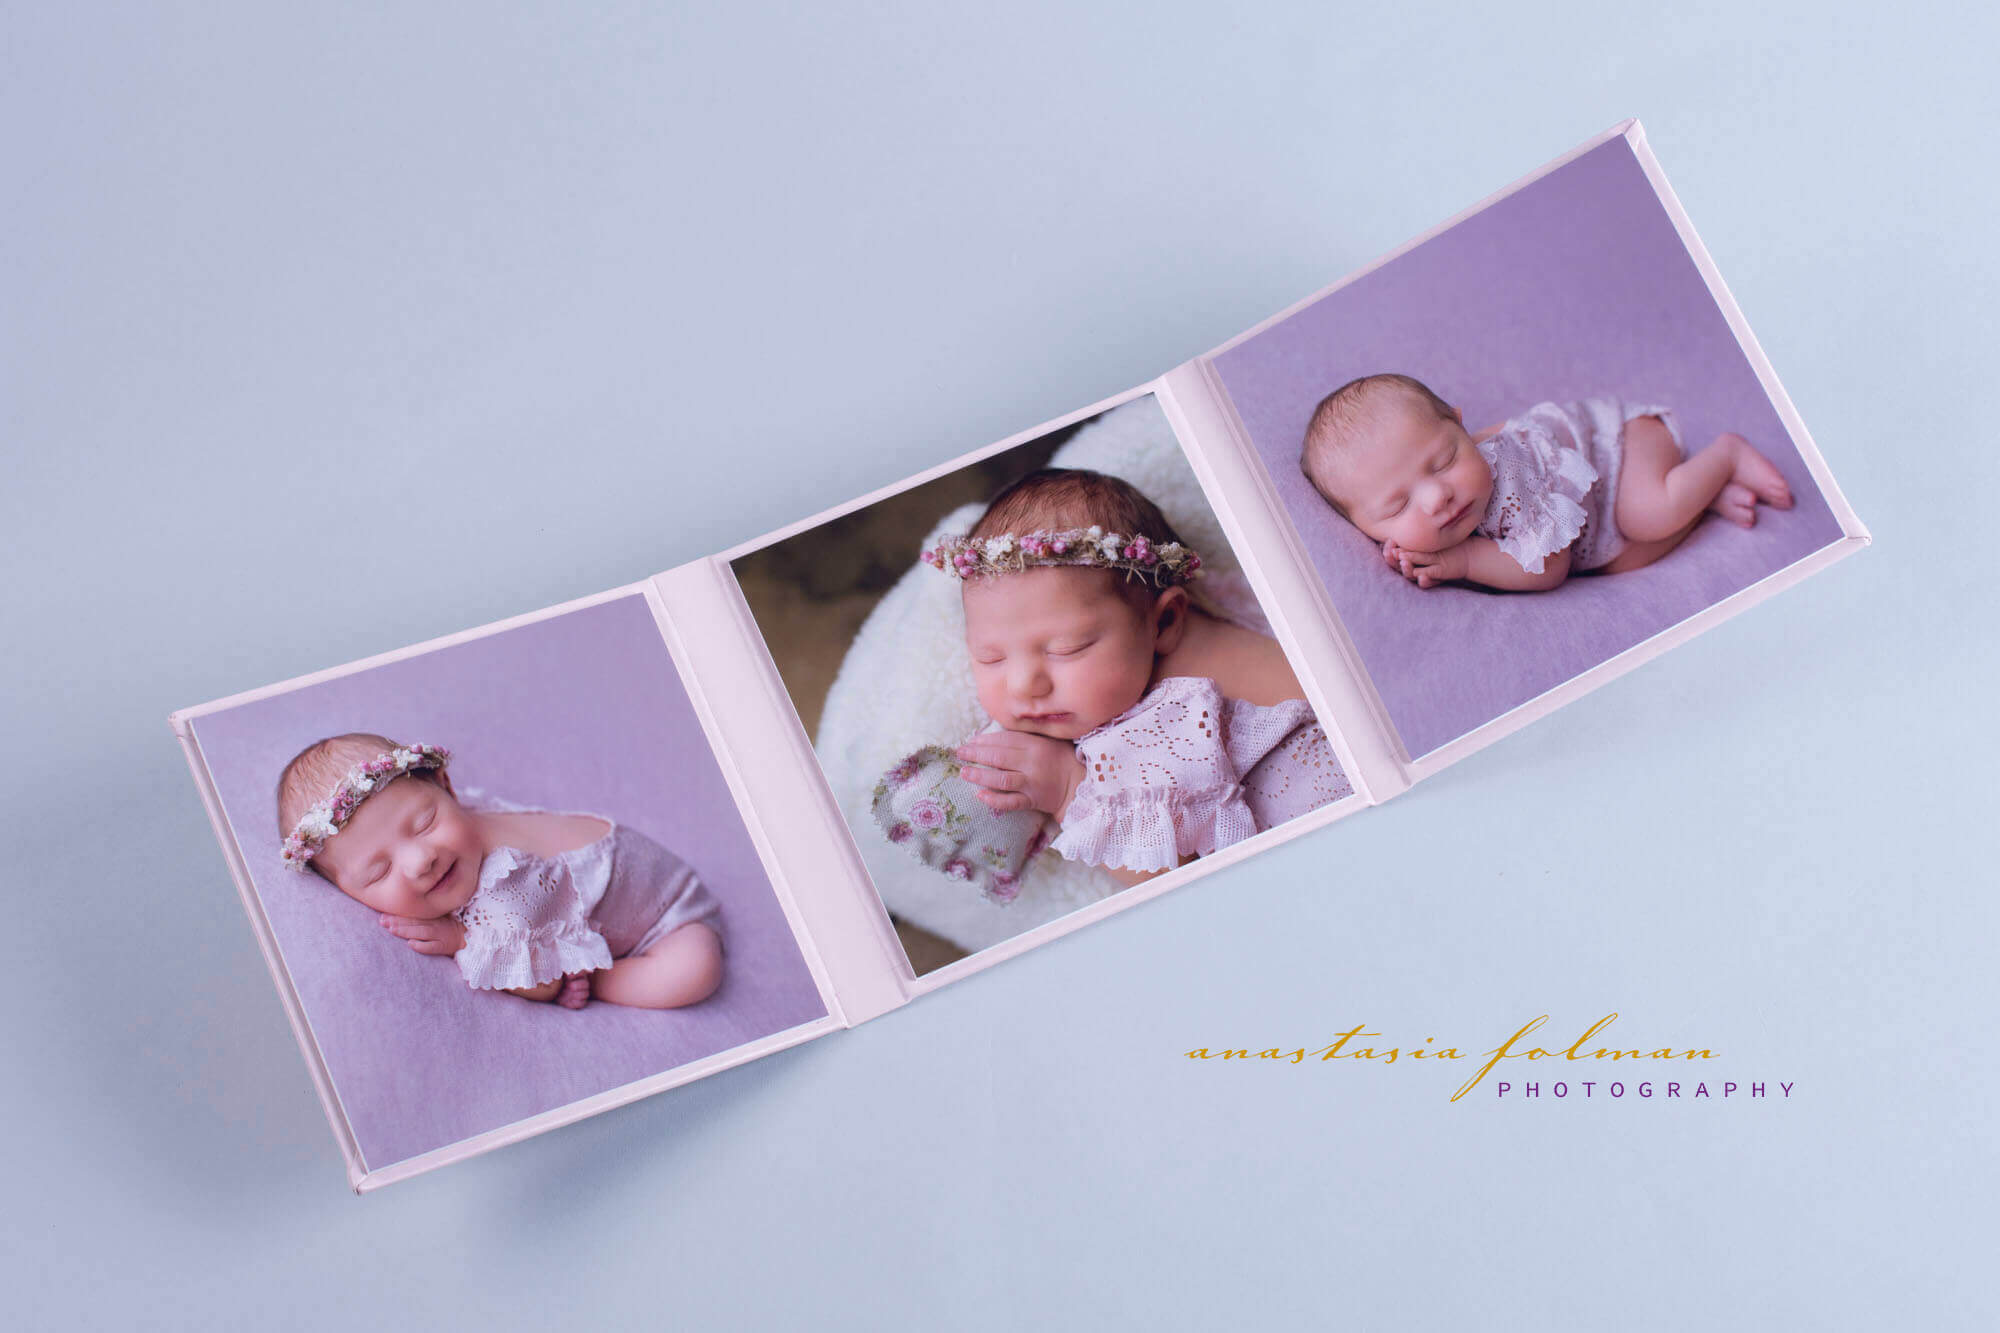 Triplex in J47 baby pink matte leatherette newborn photography nphoto professional photo product 15x15cm